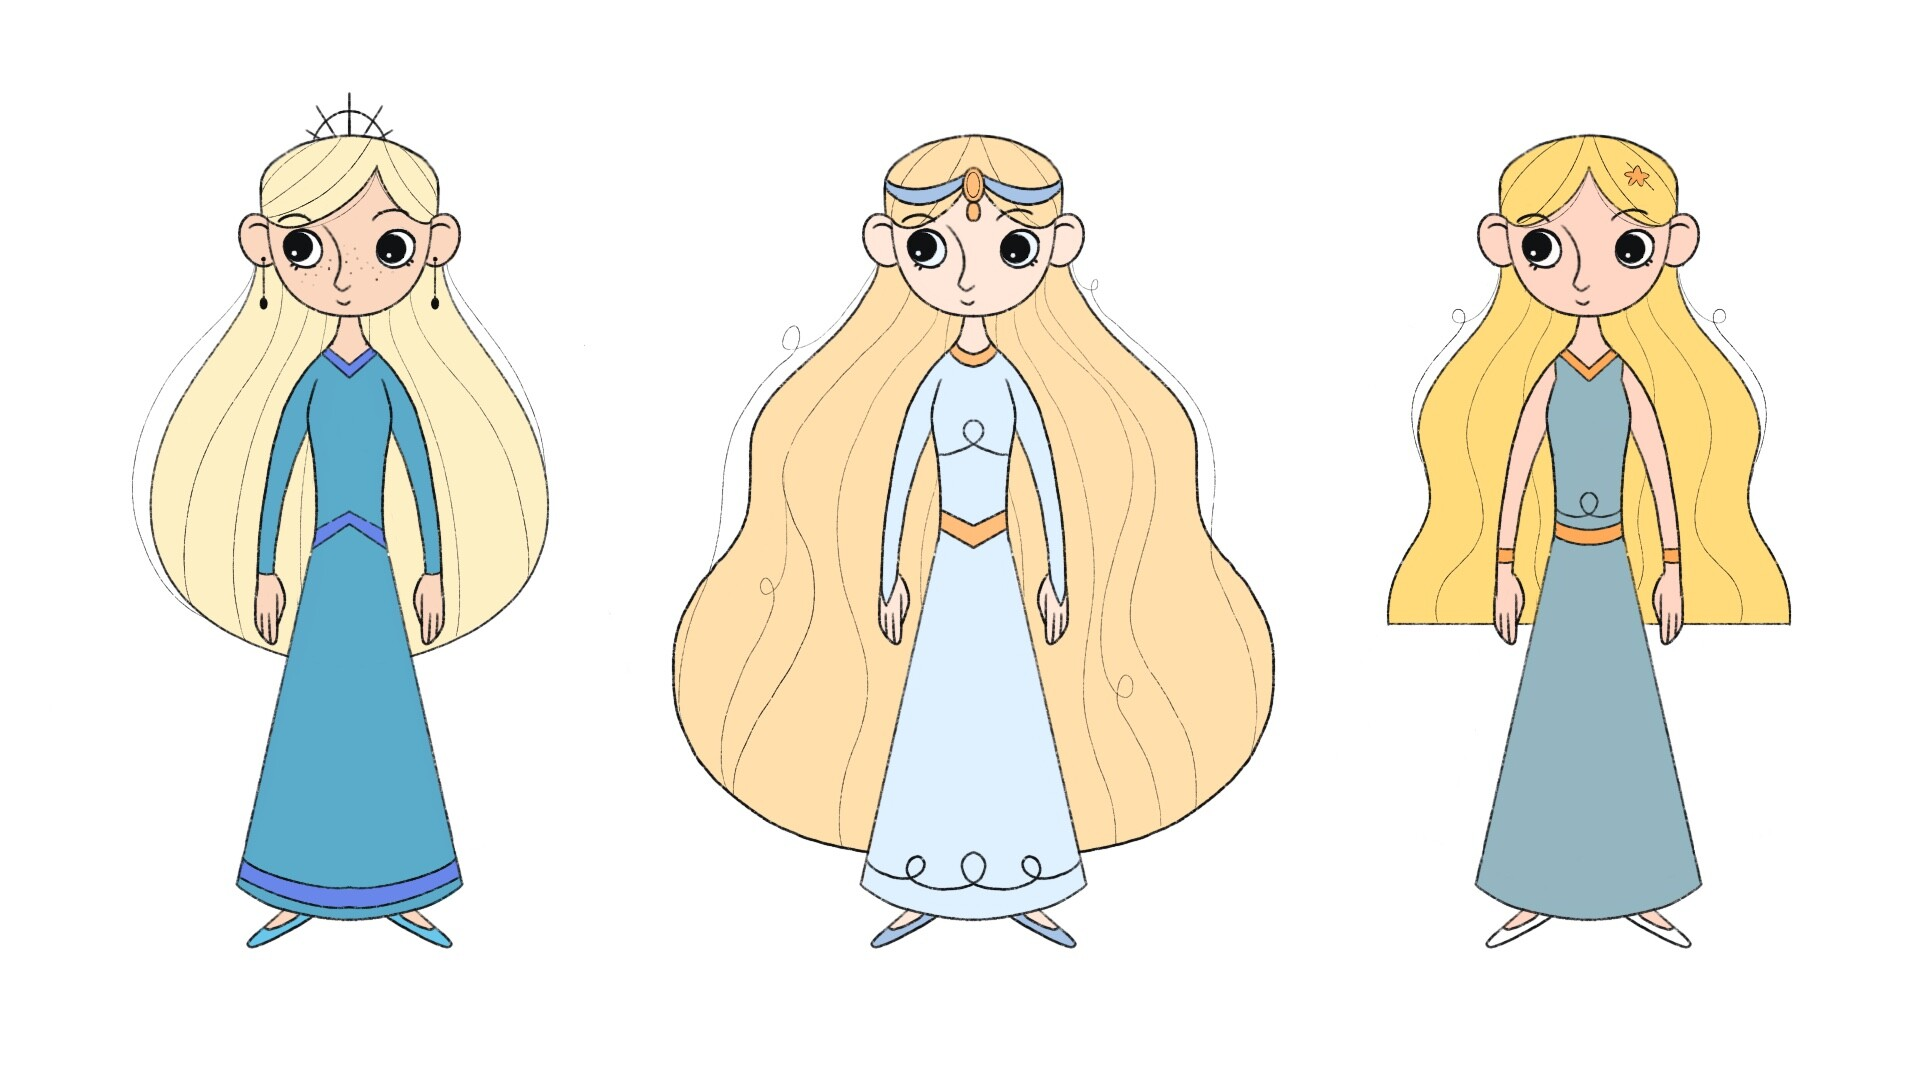 Niamh Smith   Own character in the style of Cartoon Saloon